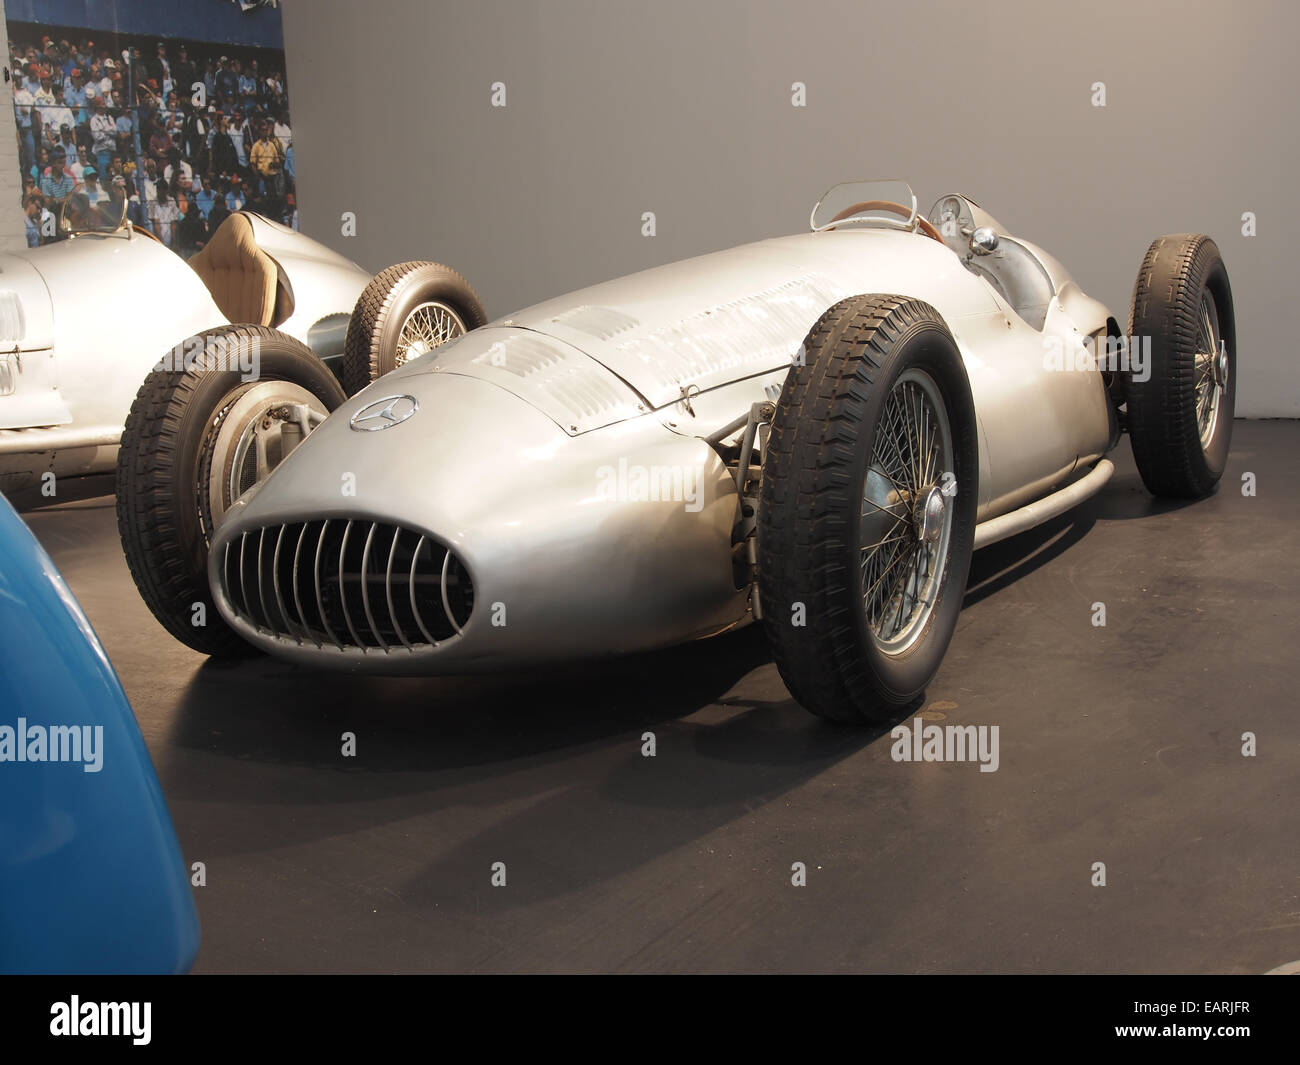 1939 Mercedes-Benz W154 Grand Prix, 12 cylinders, 2962cm3, 480hp, 280kmh, photo 1 - Stock Image